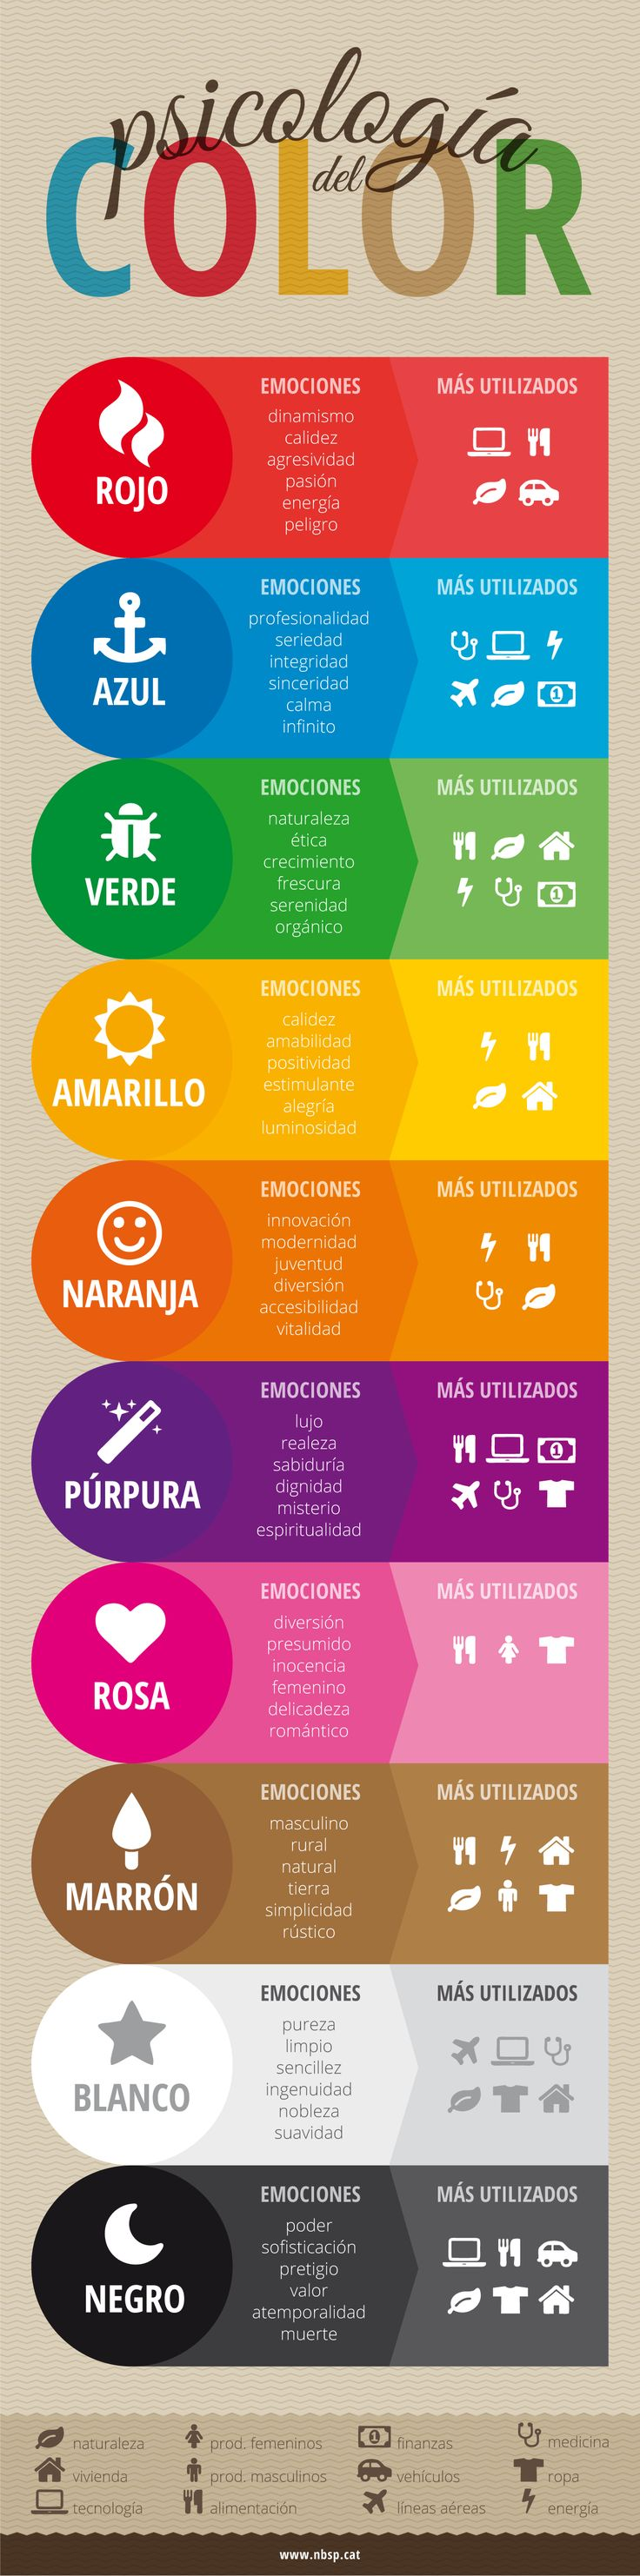 Psicología de color http://ticsyformacion.com/2014/09/03/psicologia-de-color-infografia-infographic-design-marketing/